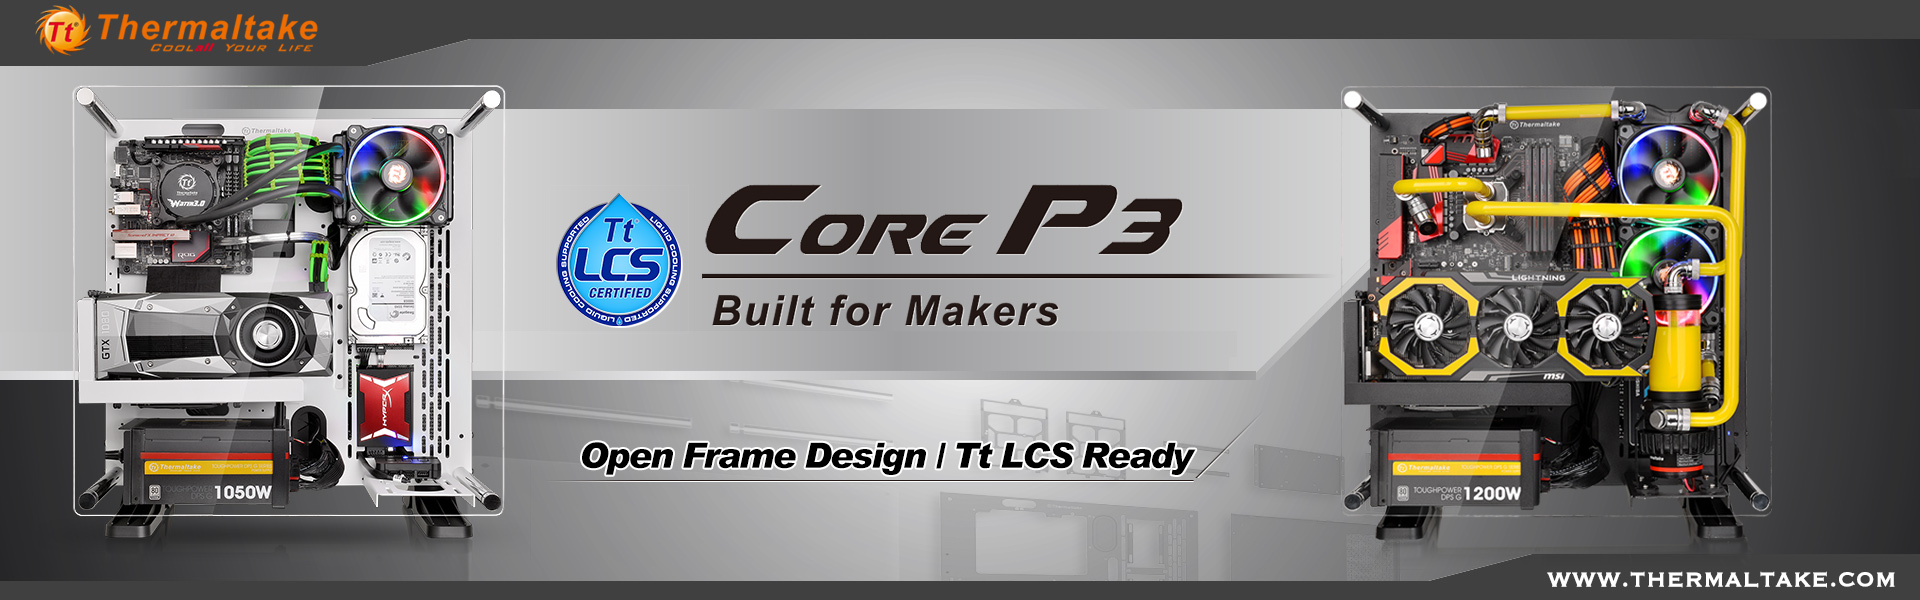 Thermaltake Release The Core P3 Series Wall Mounted Chassis